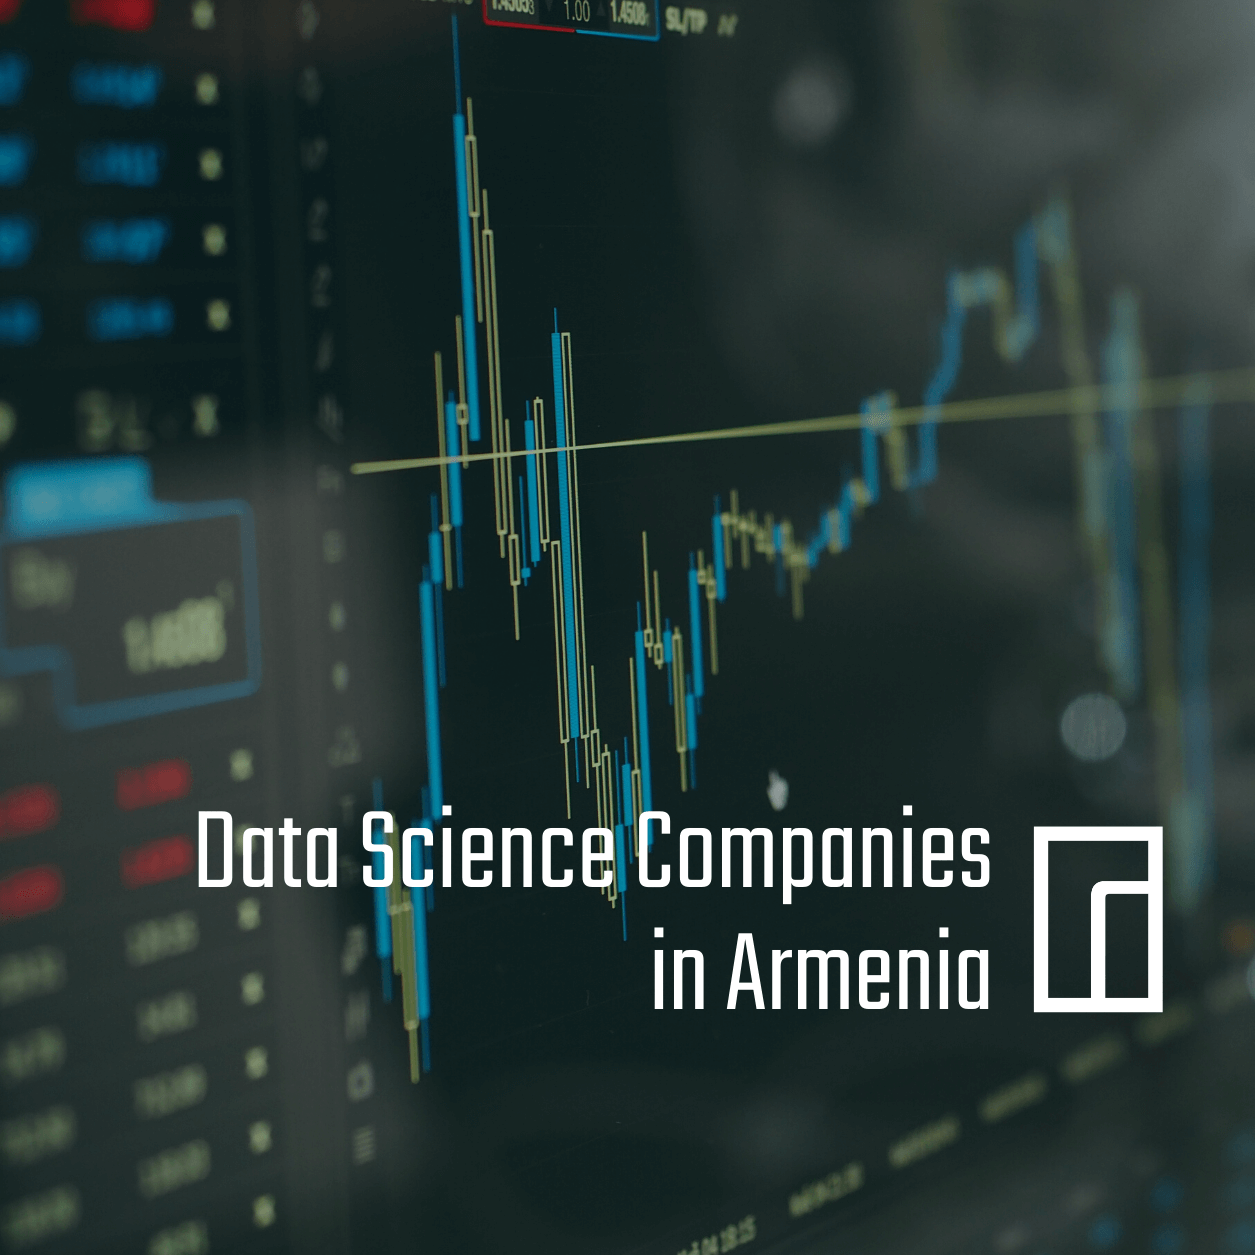 Data Science Companies in Armenia